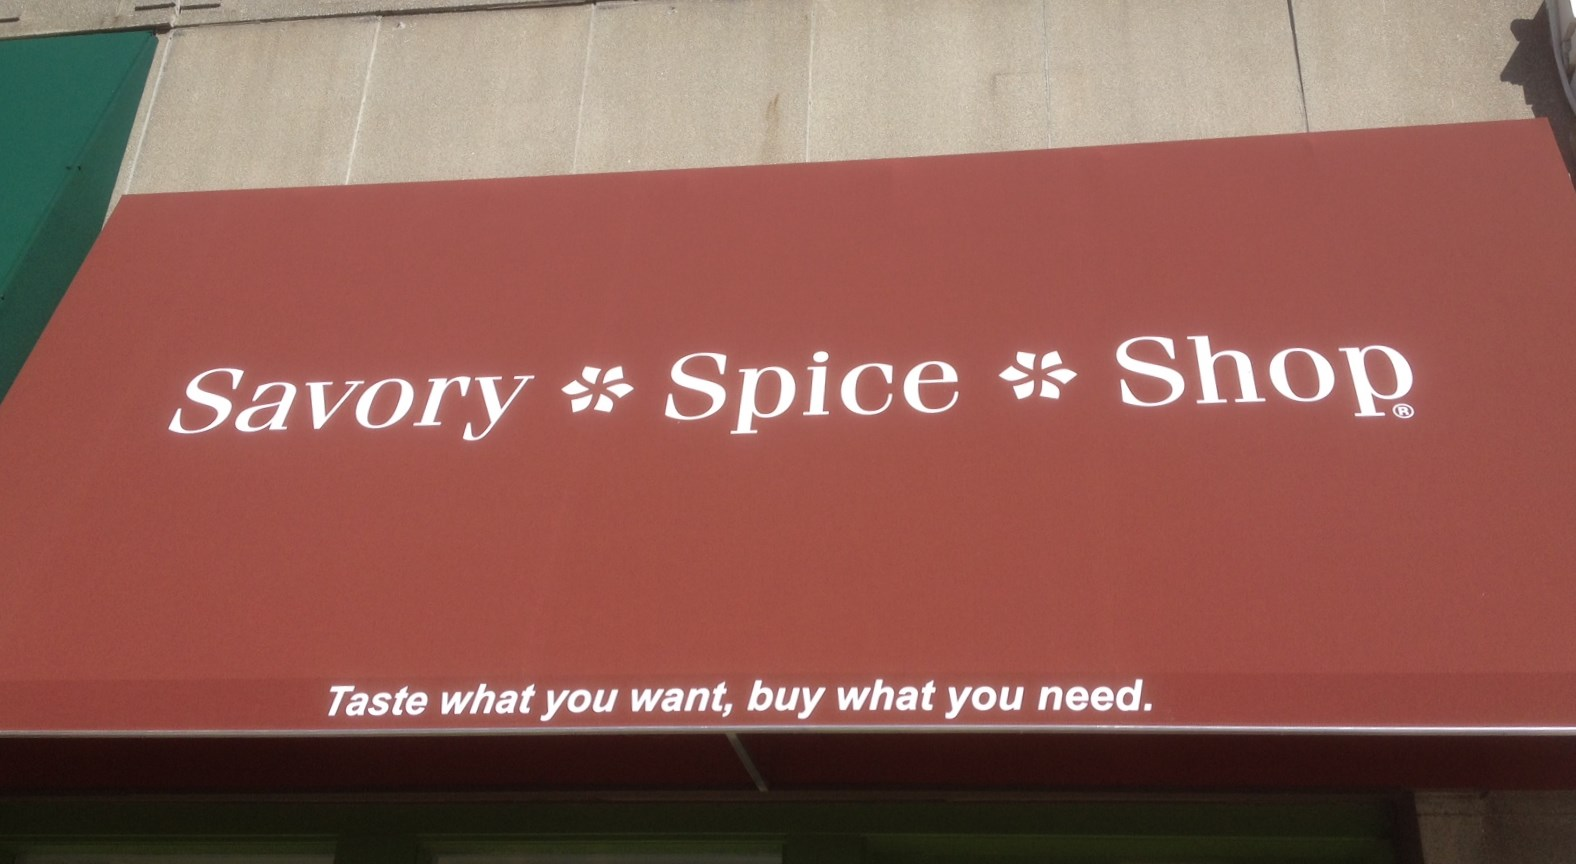 Over to the Savory Spice Shop at Lincoln Square for some rubs